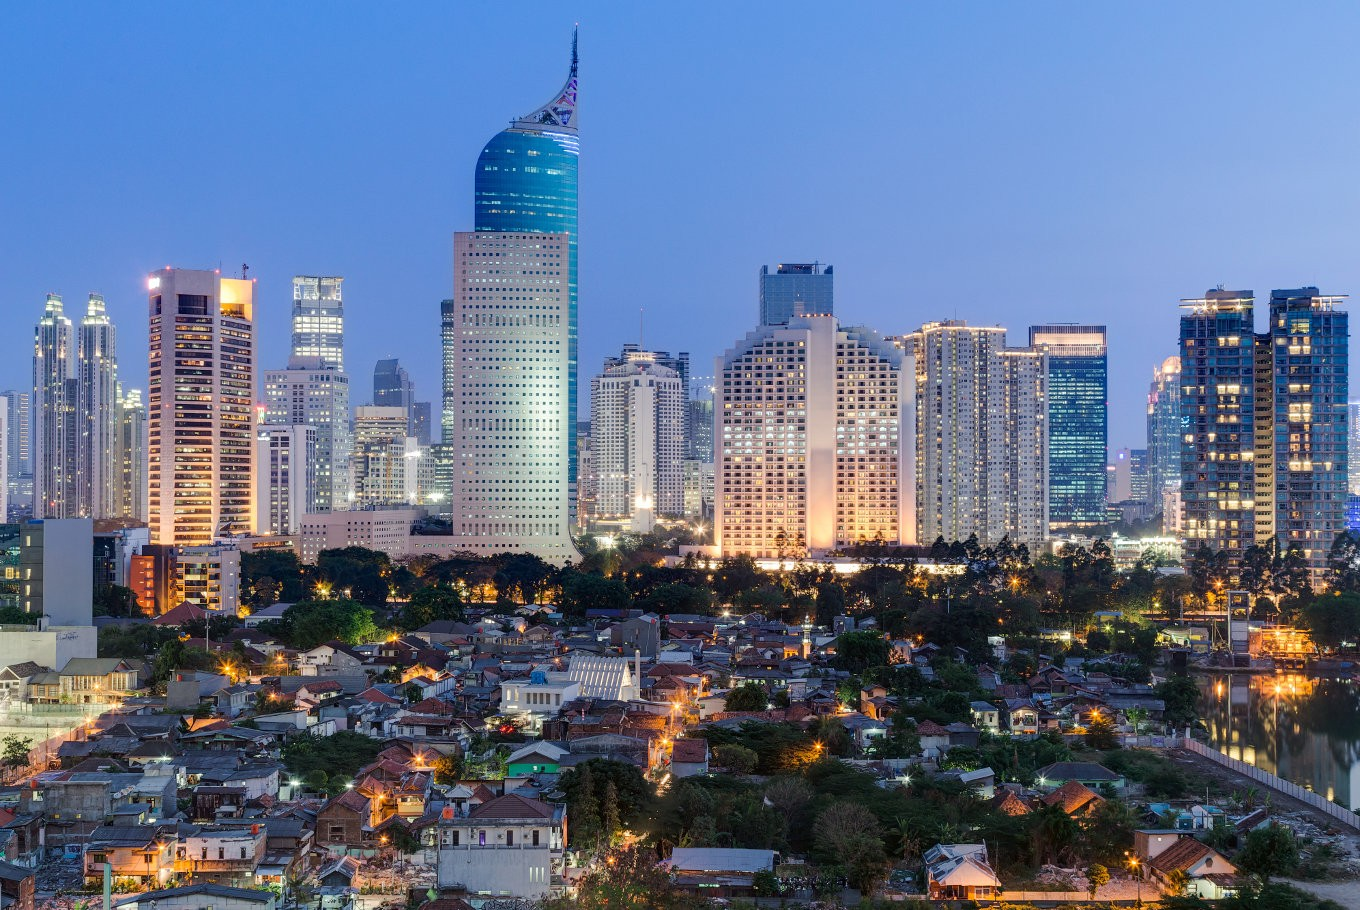 Eight tallest buildings in Jakarta: Skyscraper Center